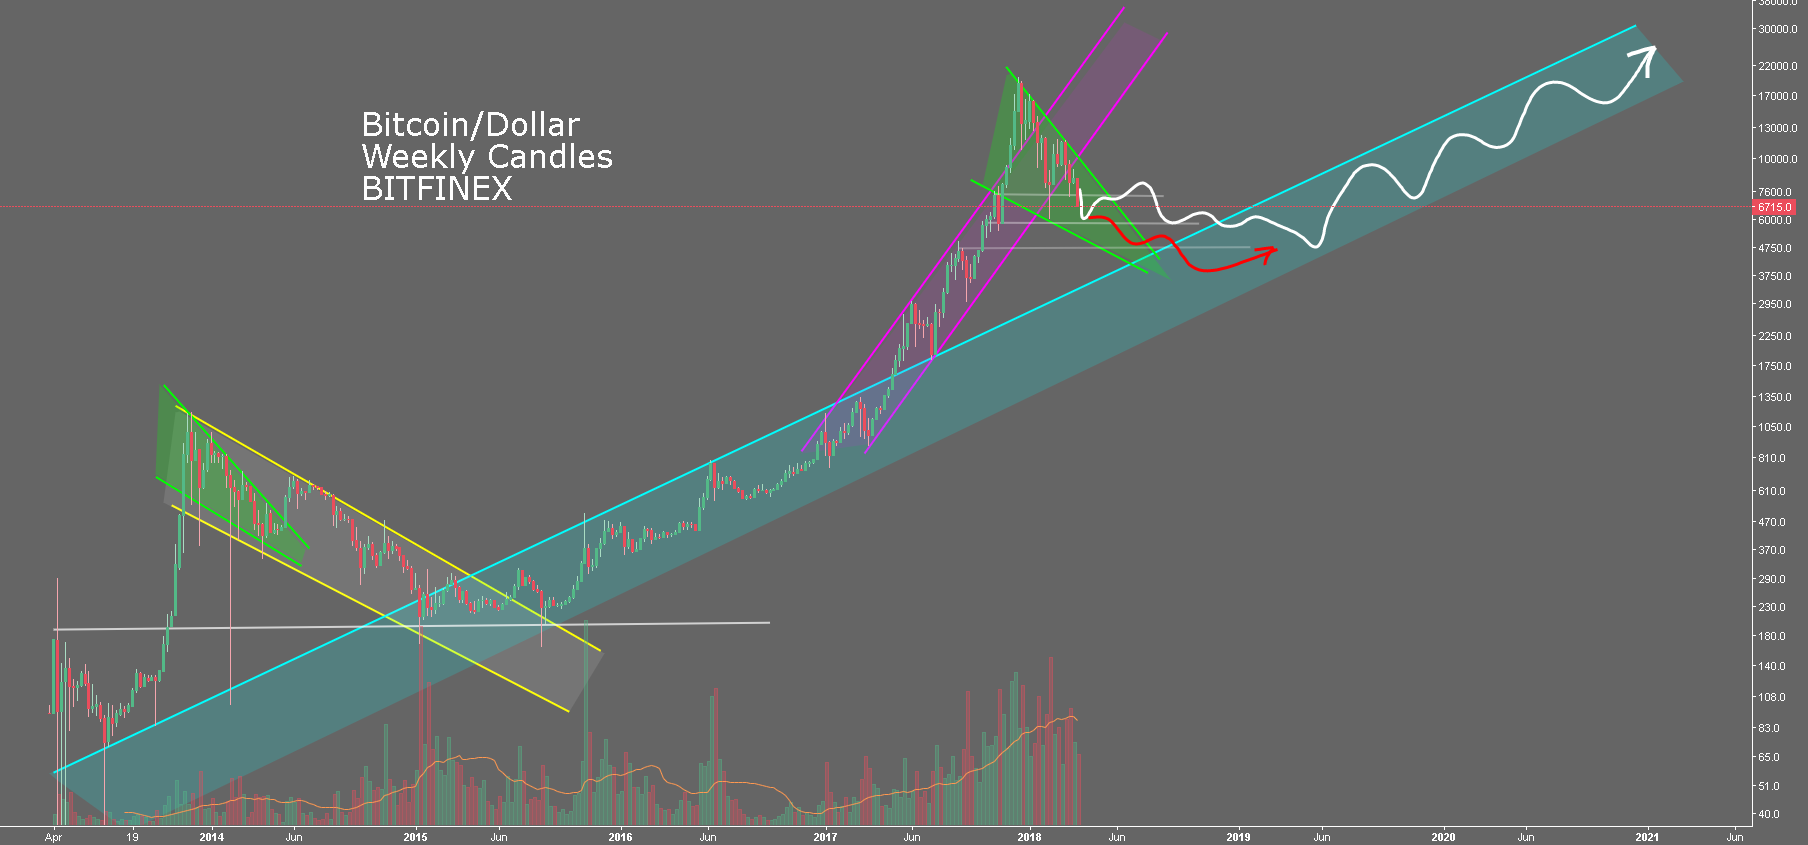 BTC/USD - A Long shot - ha! ye right *Breaths deeply*